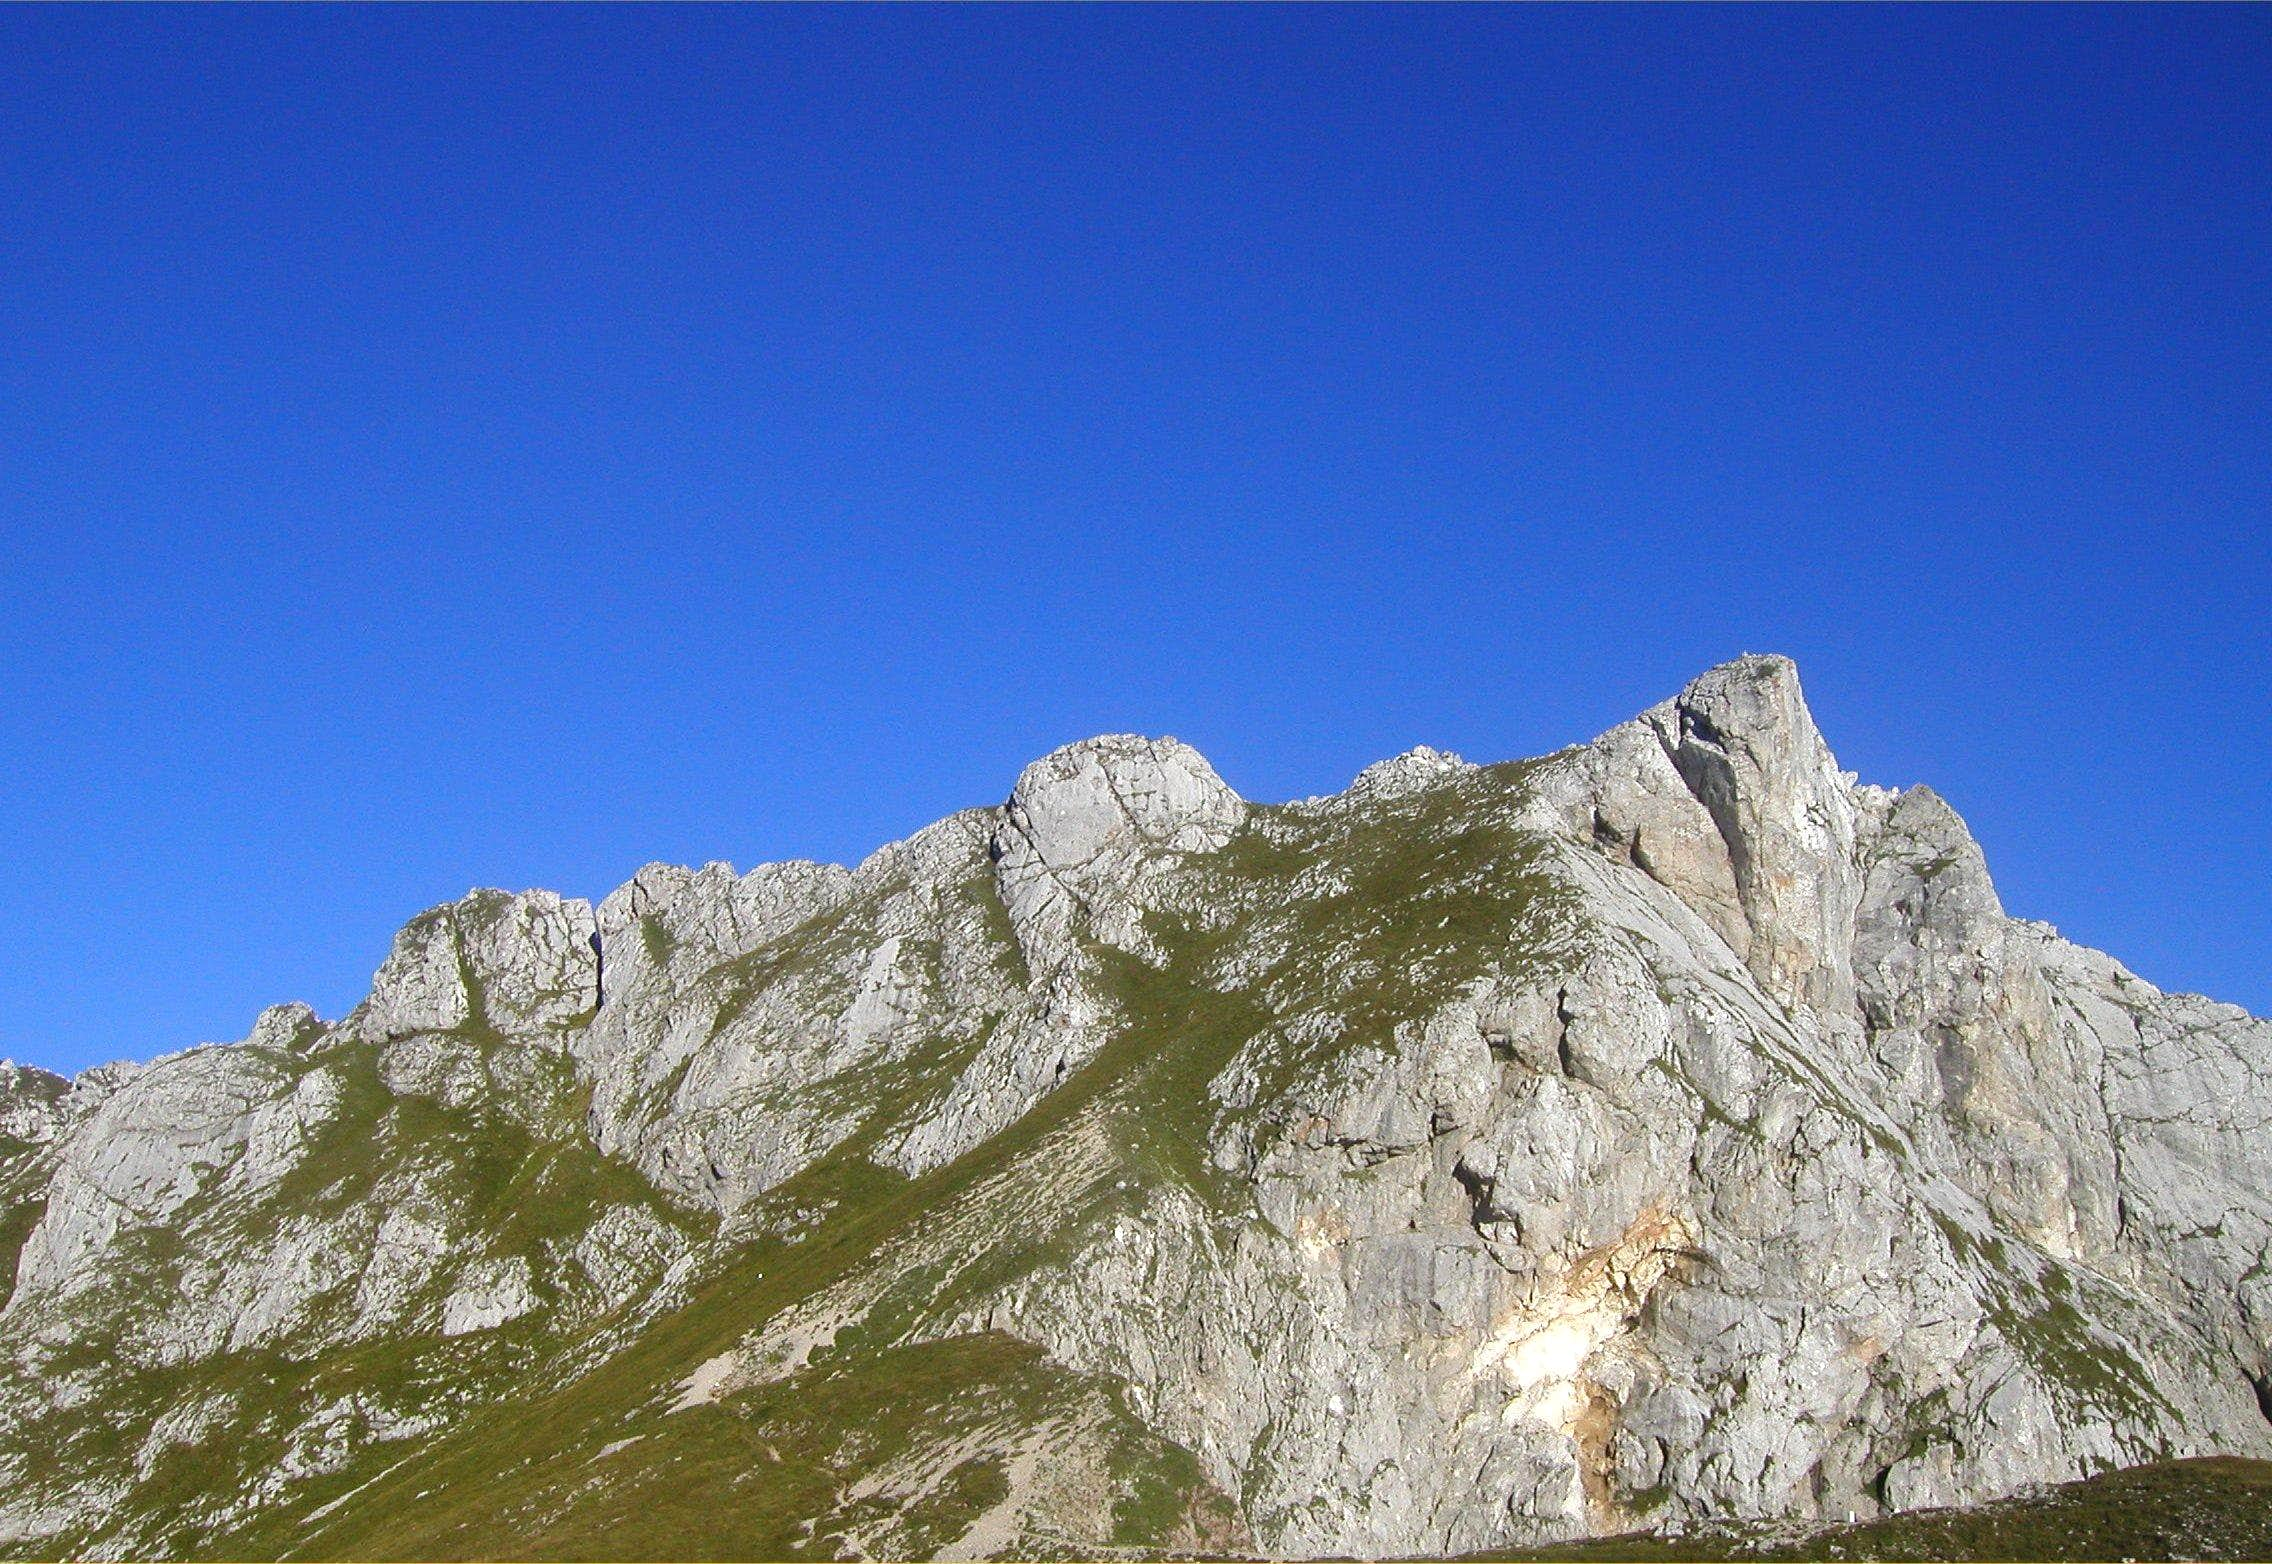 Routes on Skala and Male Spice / Cime Verdi